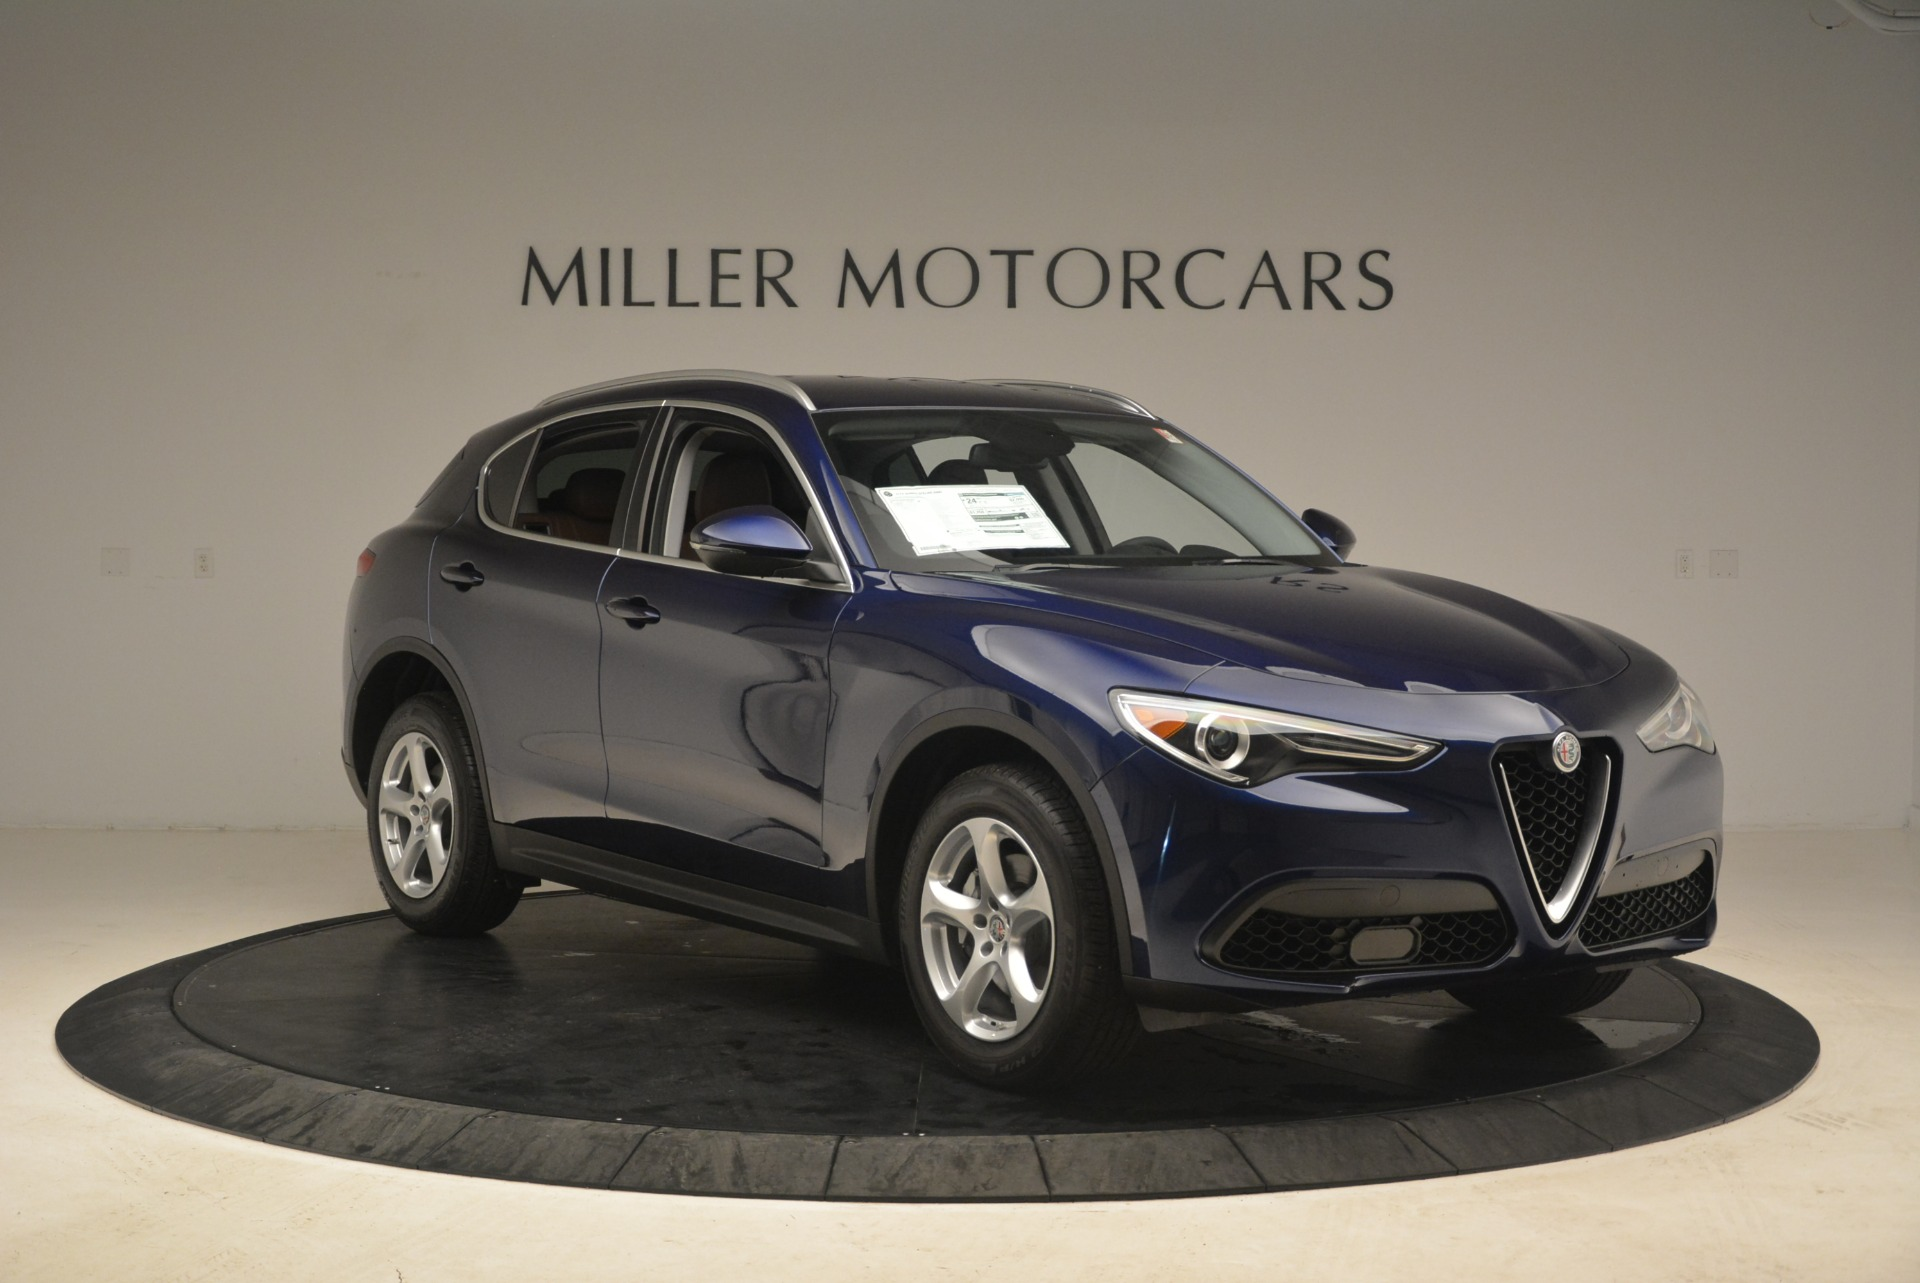 Alfa Romeo Lease Specials Miller Motorcars New Alfa Romeo - Lease alfa romeo